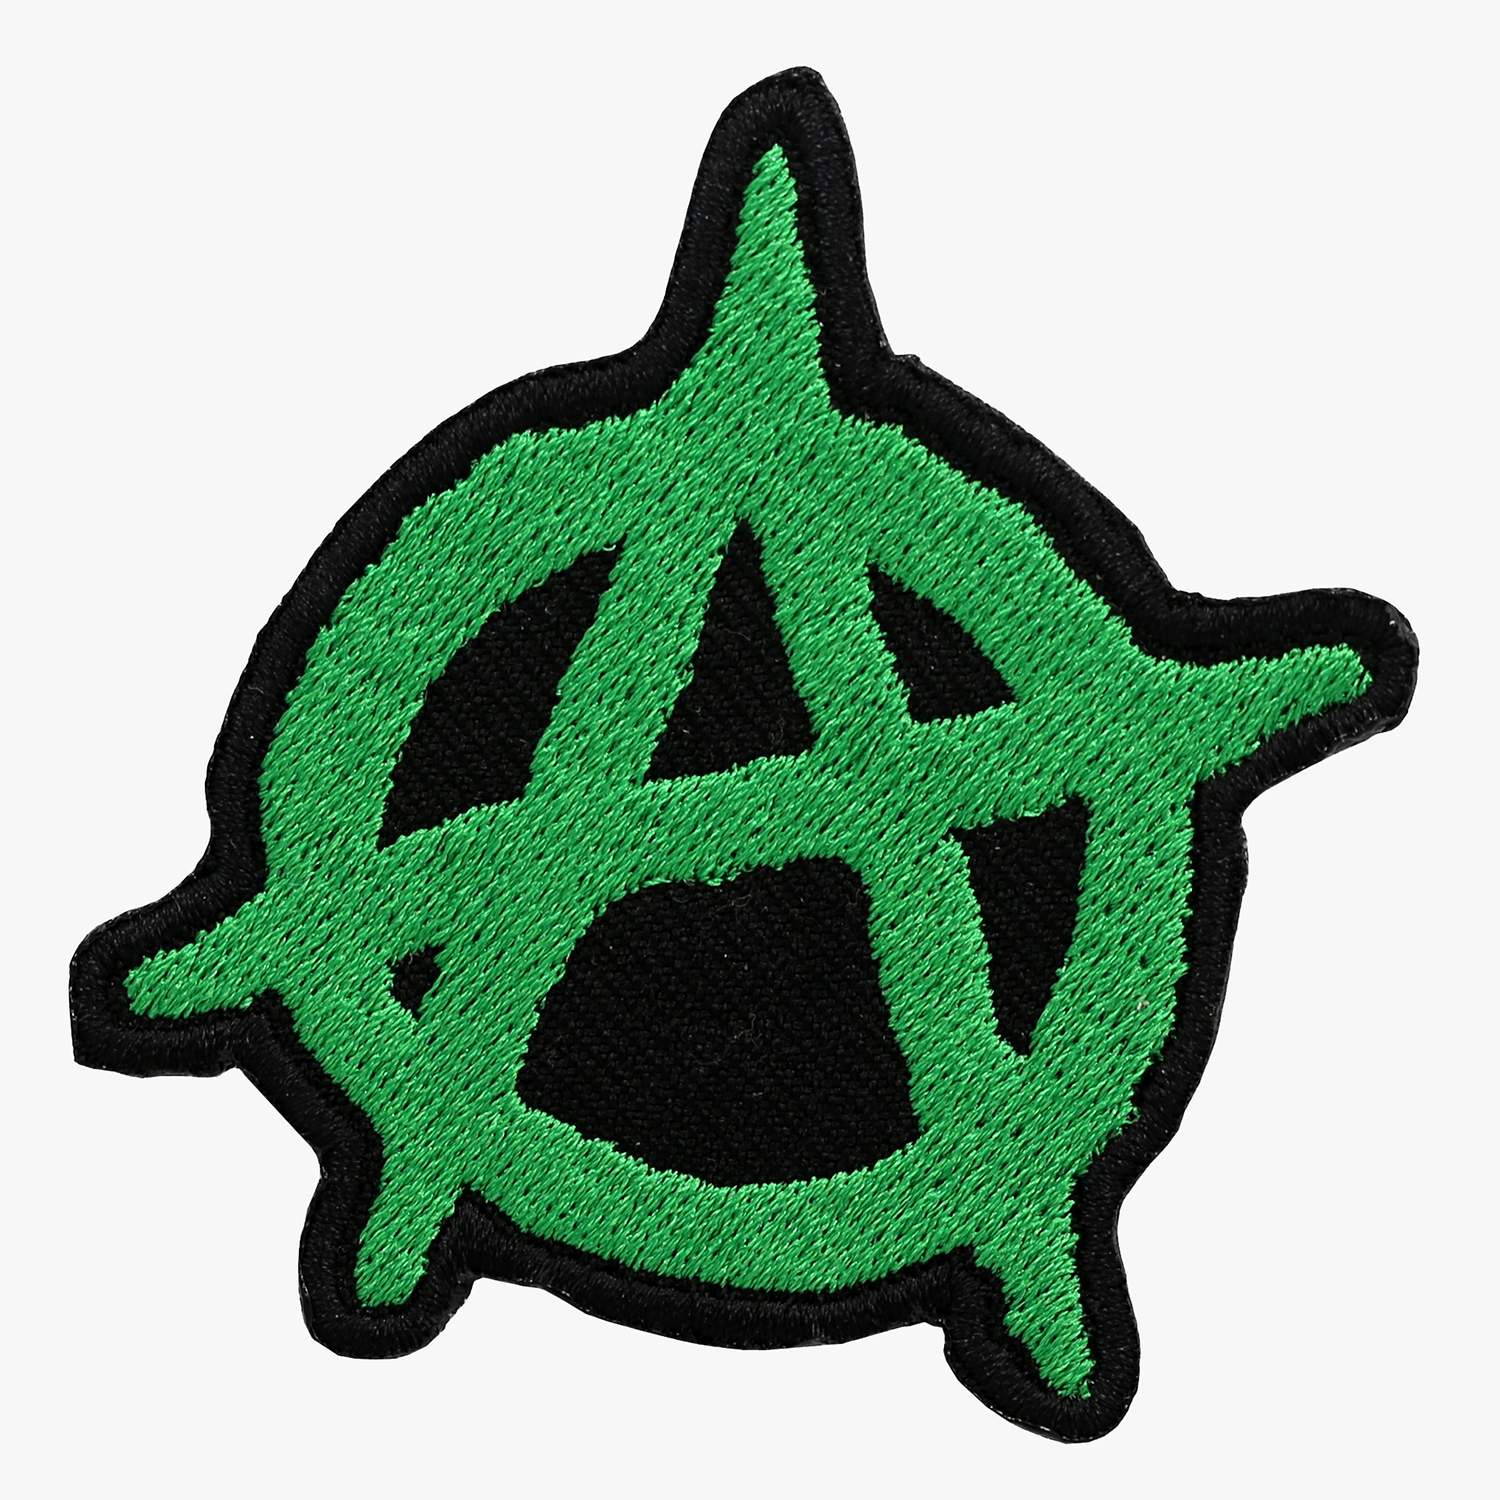 Anarchy Embroidery Biker Vest Patch